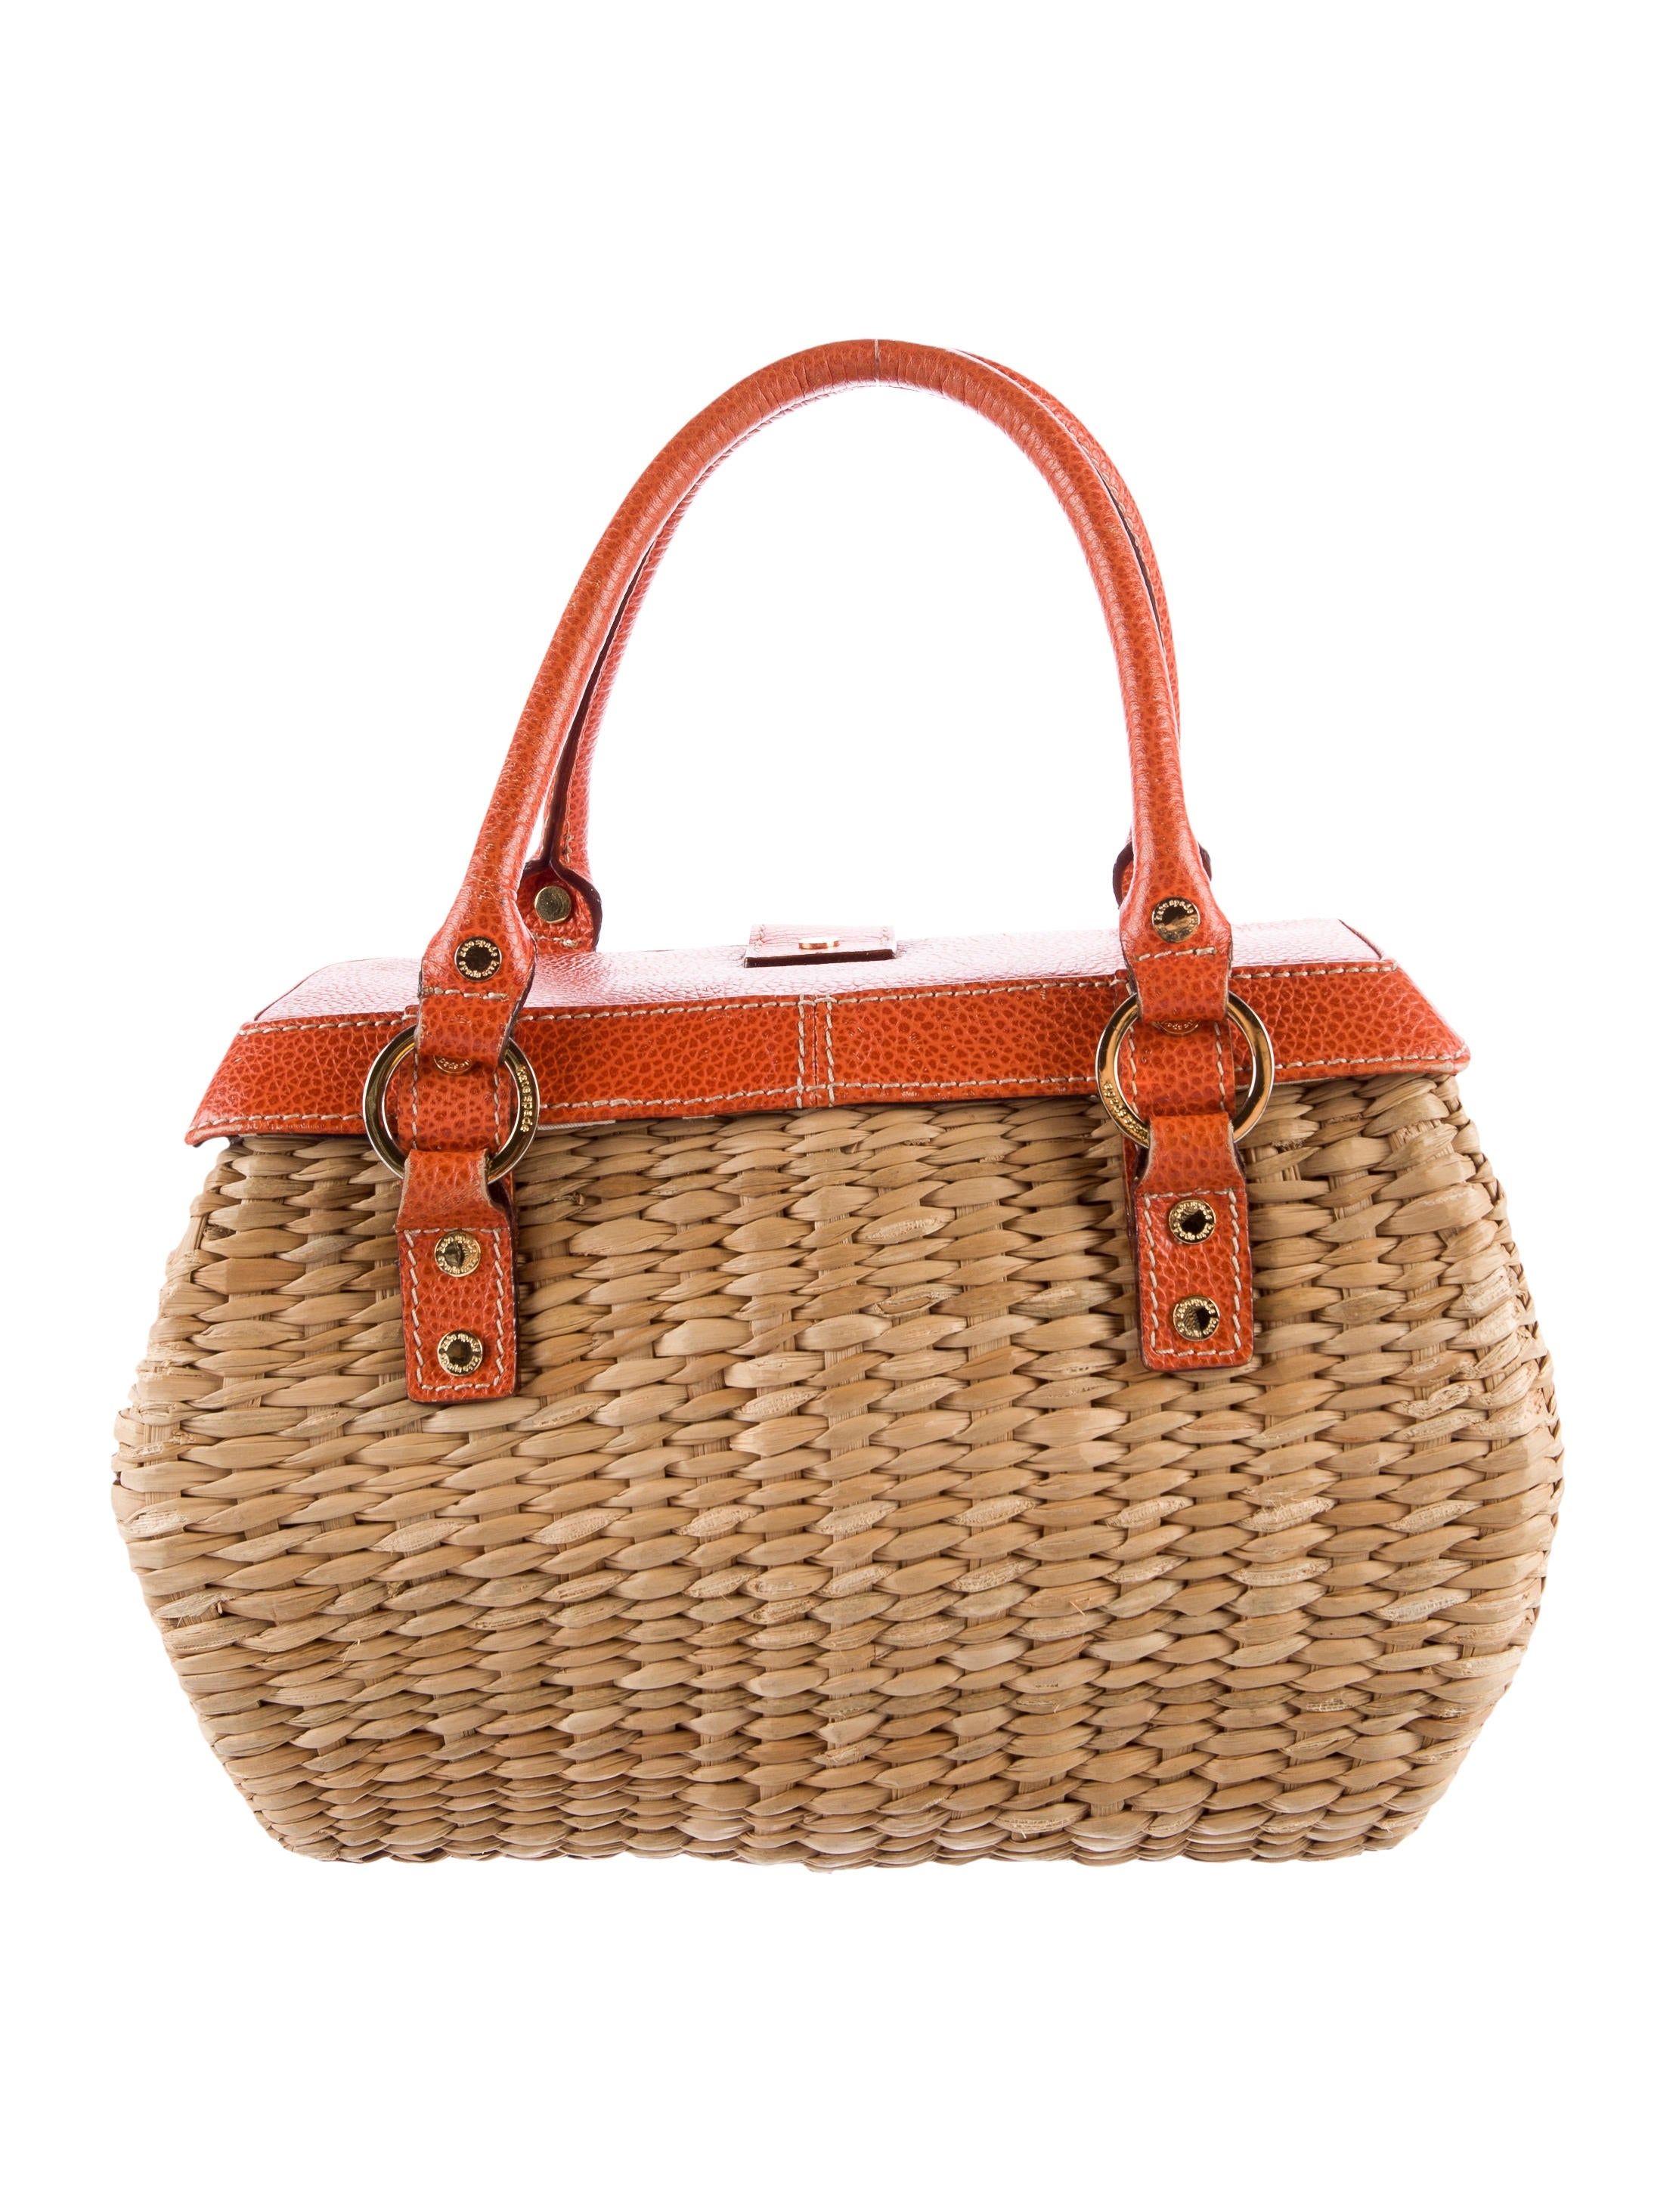 Kate Spade New York Leather Trimmed Wicker Handle Bag